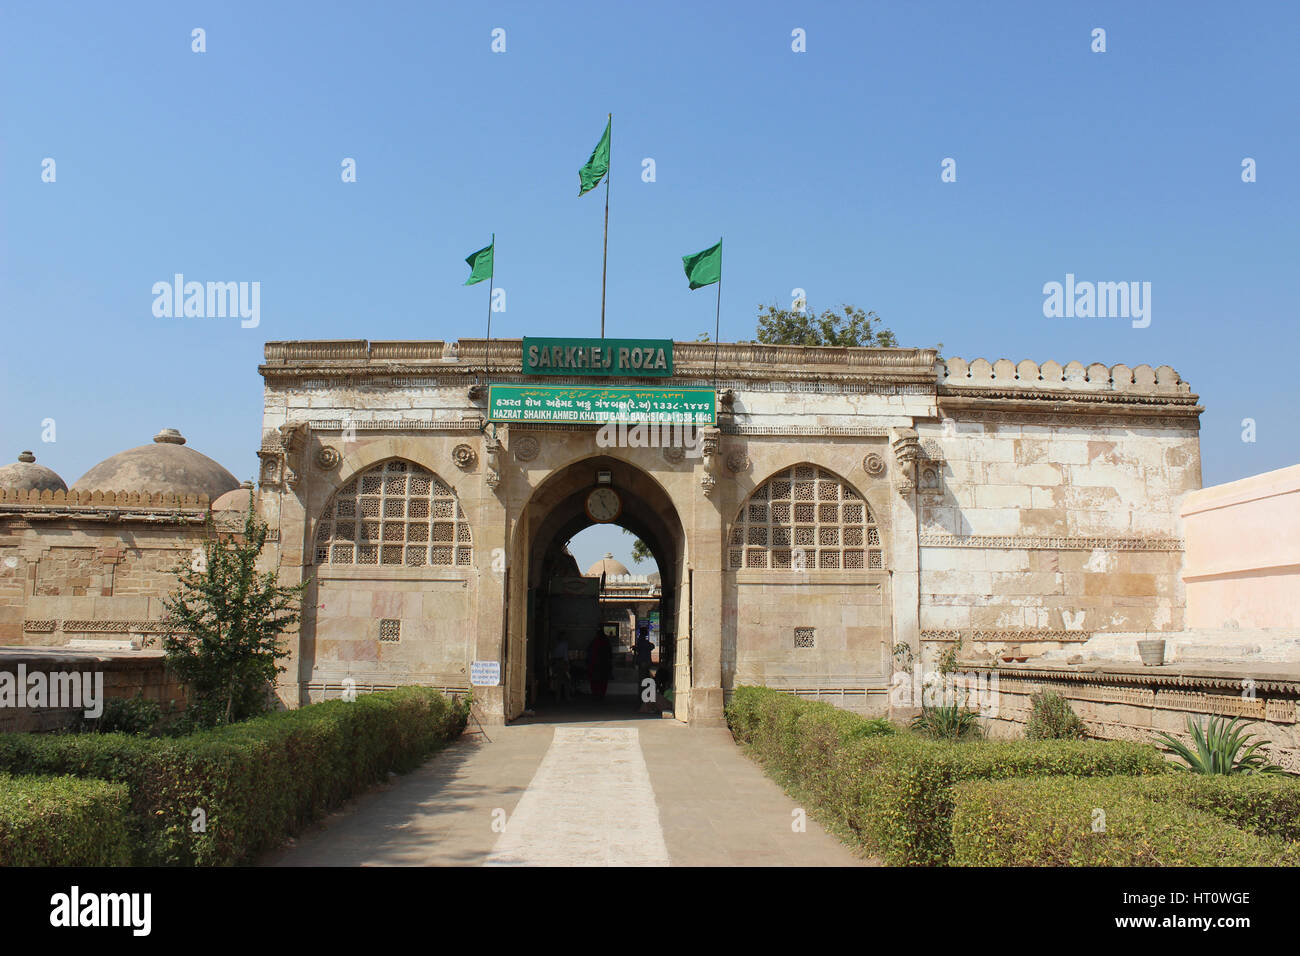 Entrance of Sarkhej Roza. Mosque and tomb complex. Village of Makarba, 7 km south-west of Ahmedabad in Gujarat India. - Stock Image